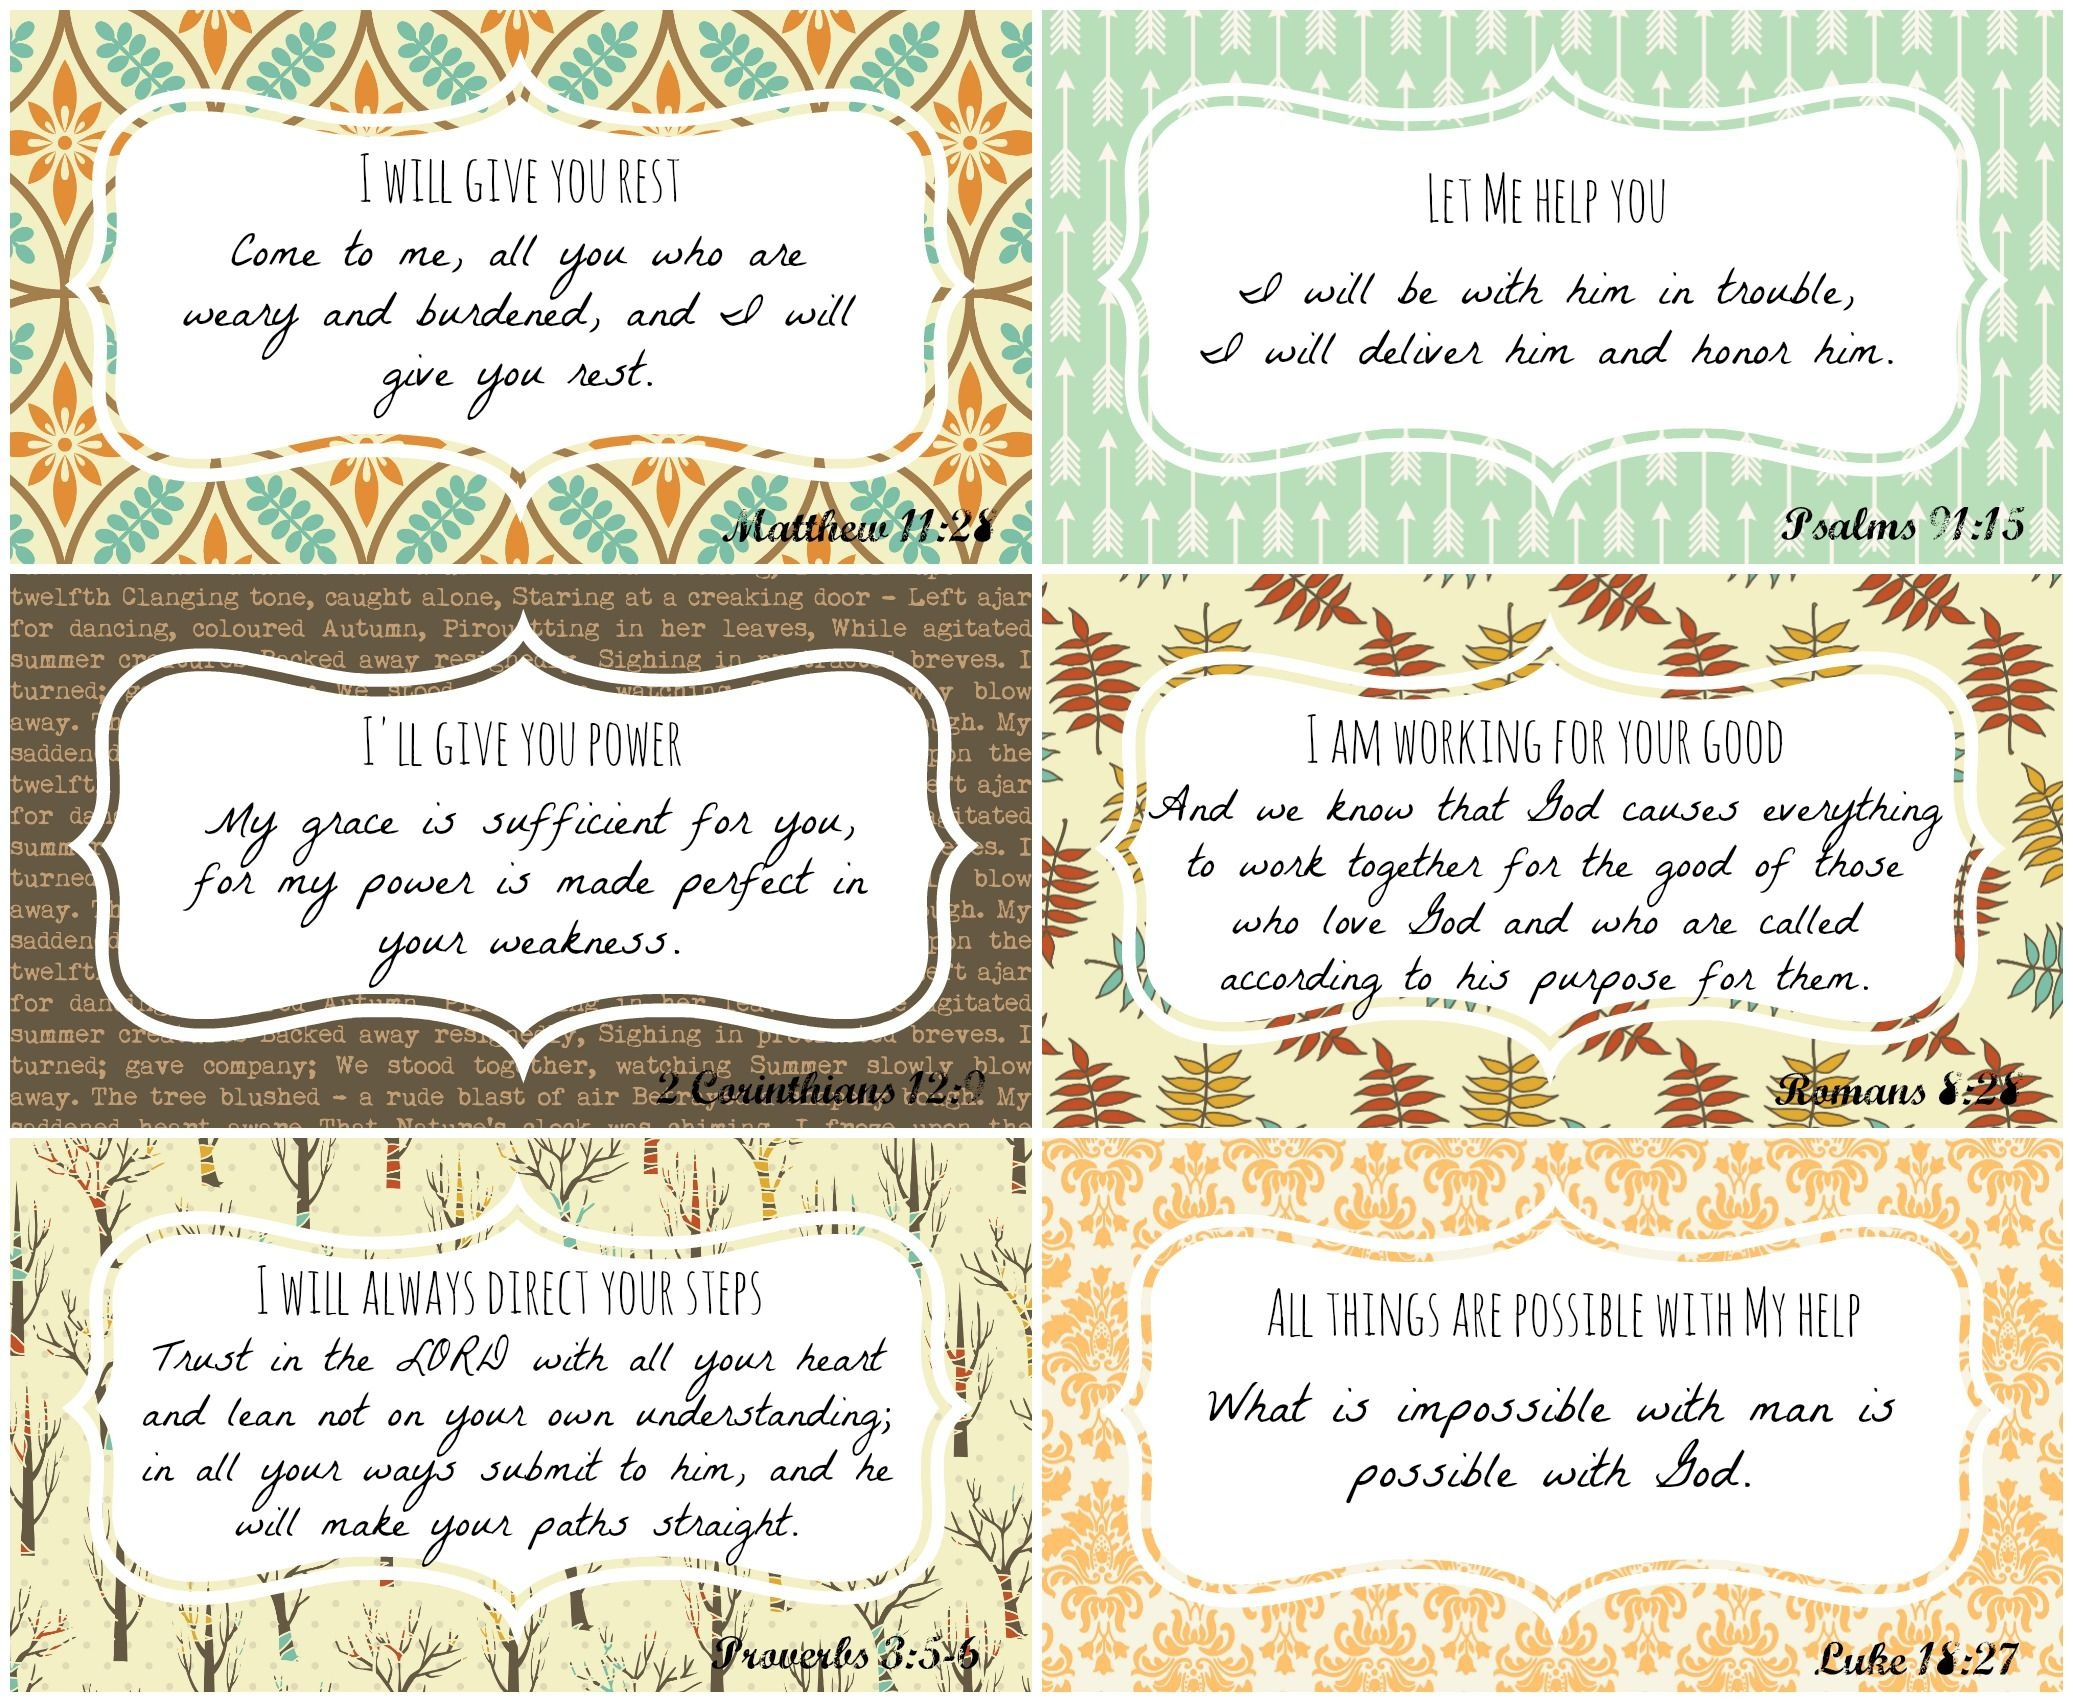 Enjoy These Free Printables From P31 Online Bible Studies Taken From - Free Online Printable Bible Studies